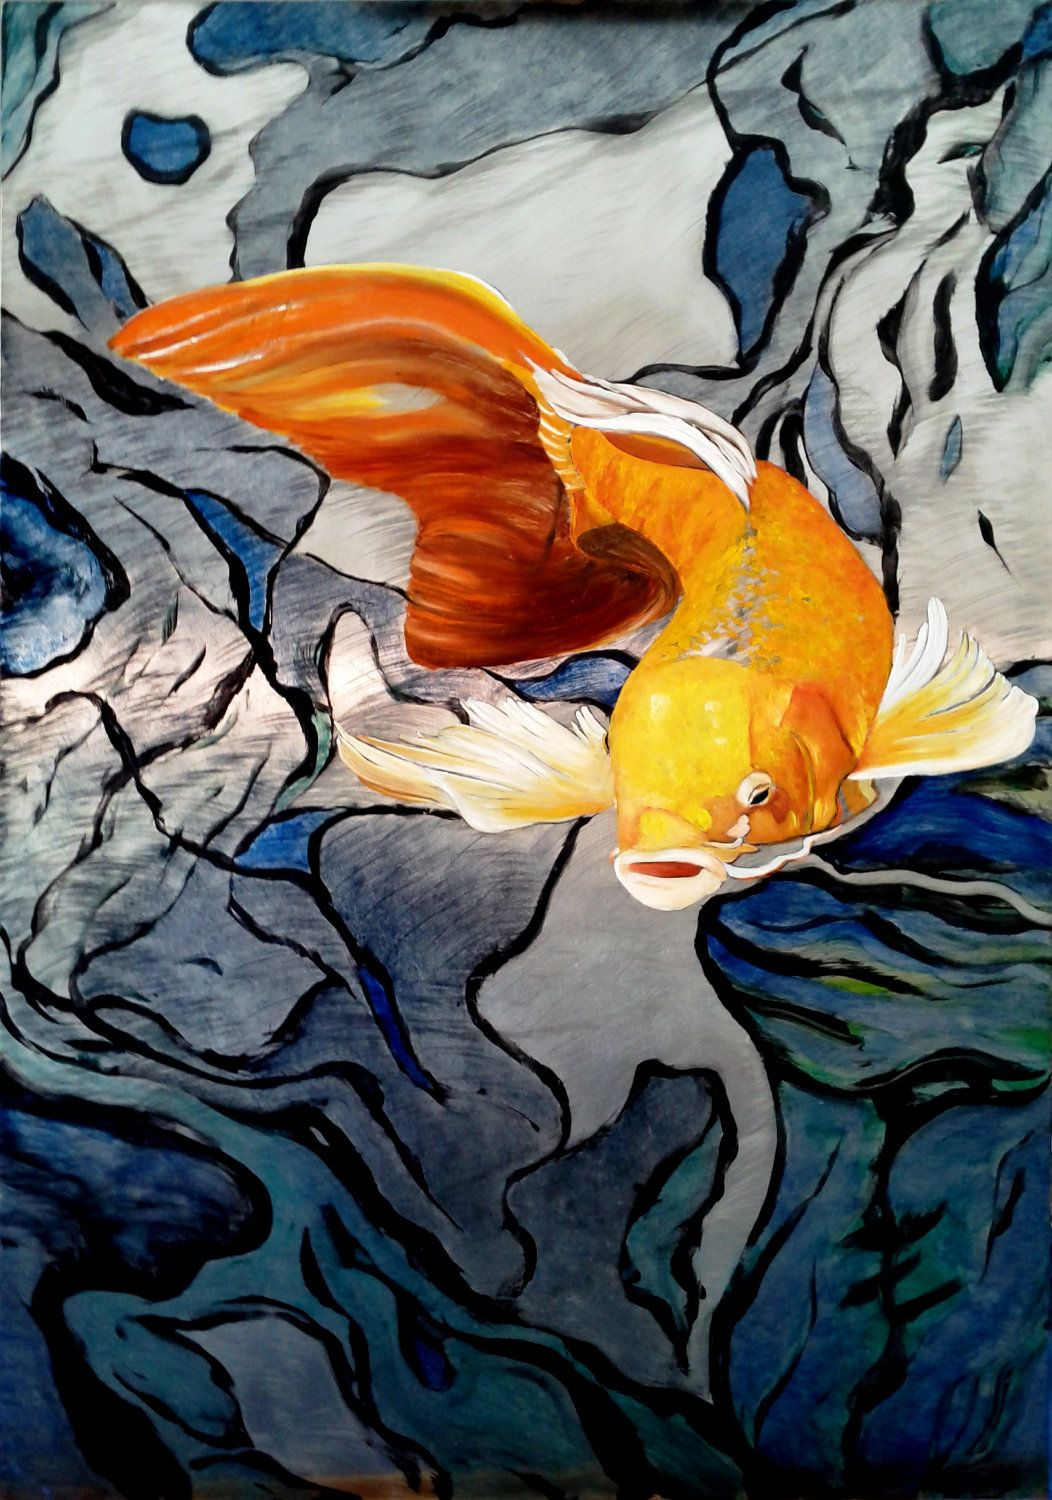 Koi fish wallpaper for walls painting inspiration for Koi fish wallpaper